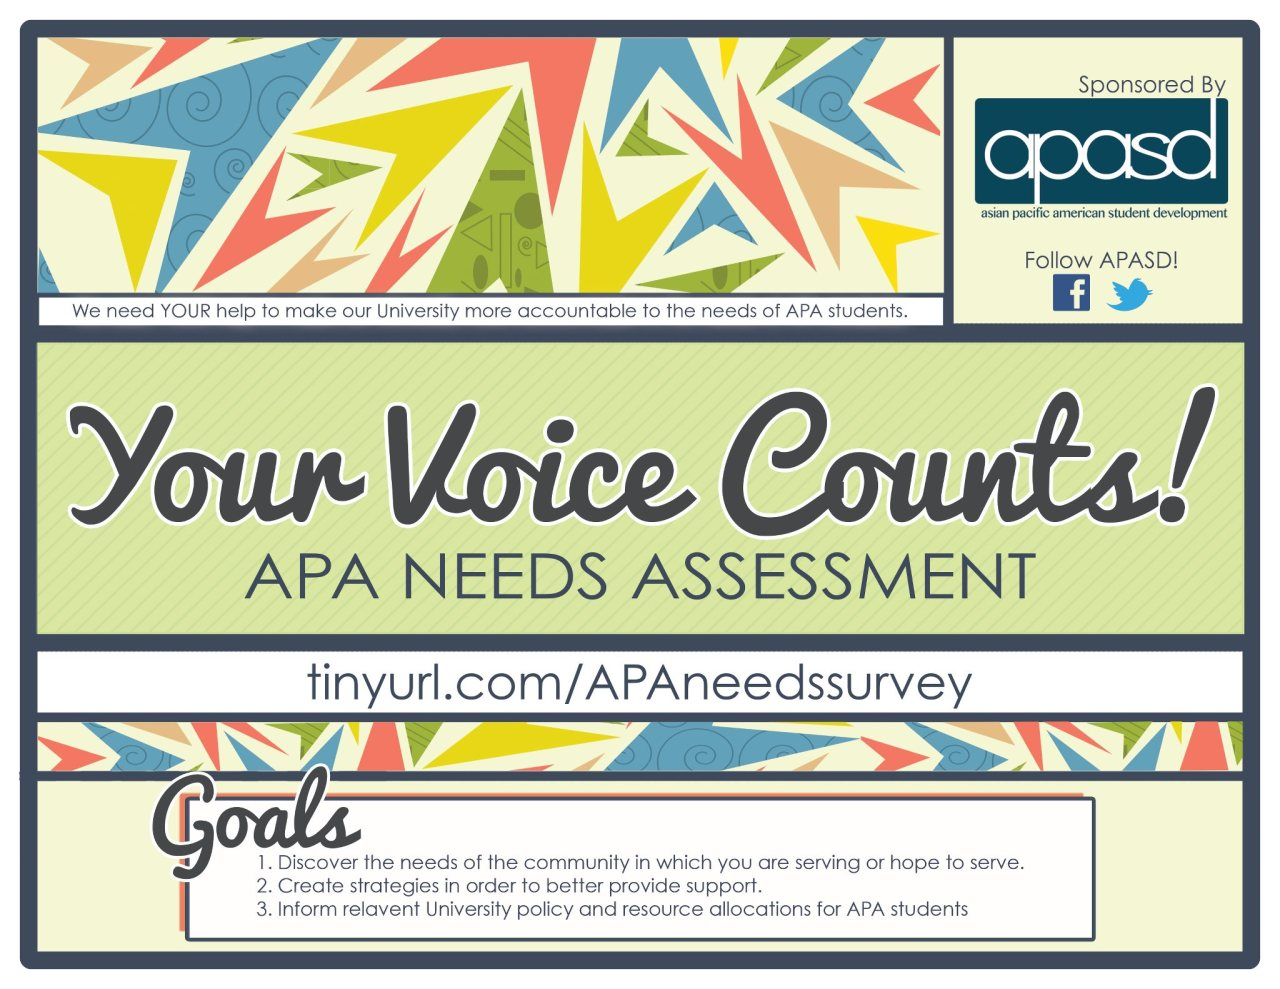 reachcampusorganizing:  Make YOUR voice count! APASD is conducting research within our community to ensure that the university is adequately meeting the needs of API students on this campus!Please share and complete this survey at: http://tinyurl.com/APAneedssurvey  Berkeley Blasting! More data means more depth in the research!